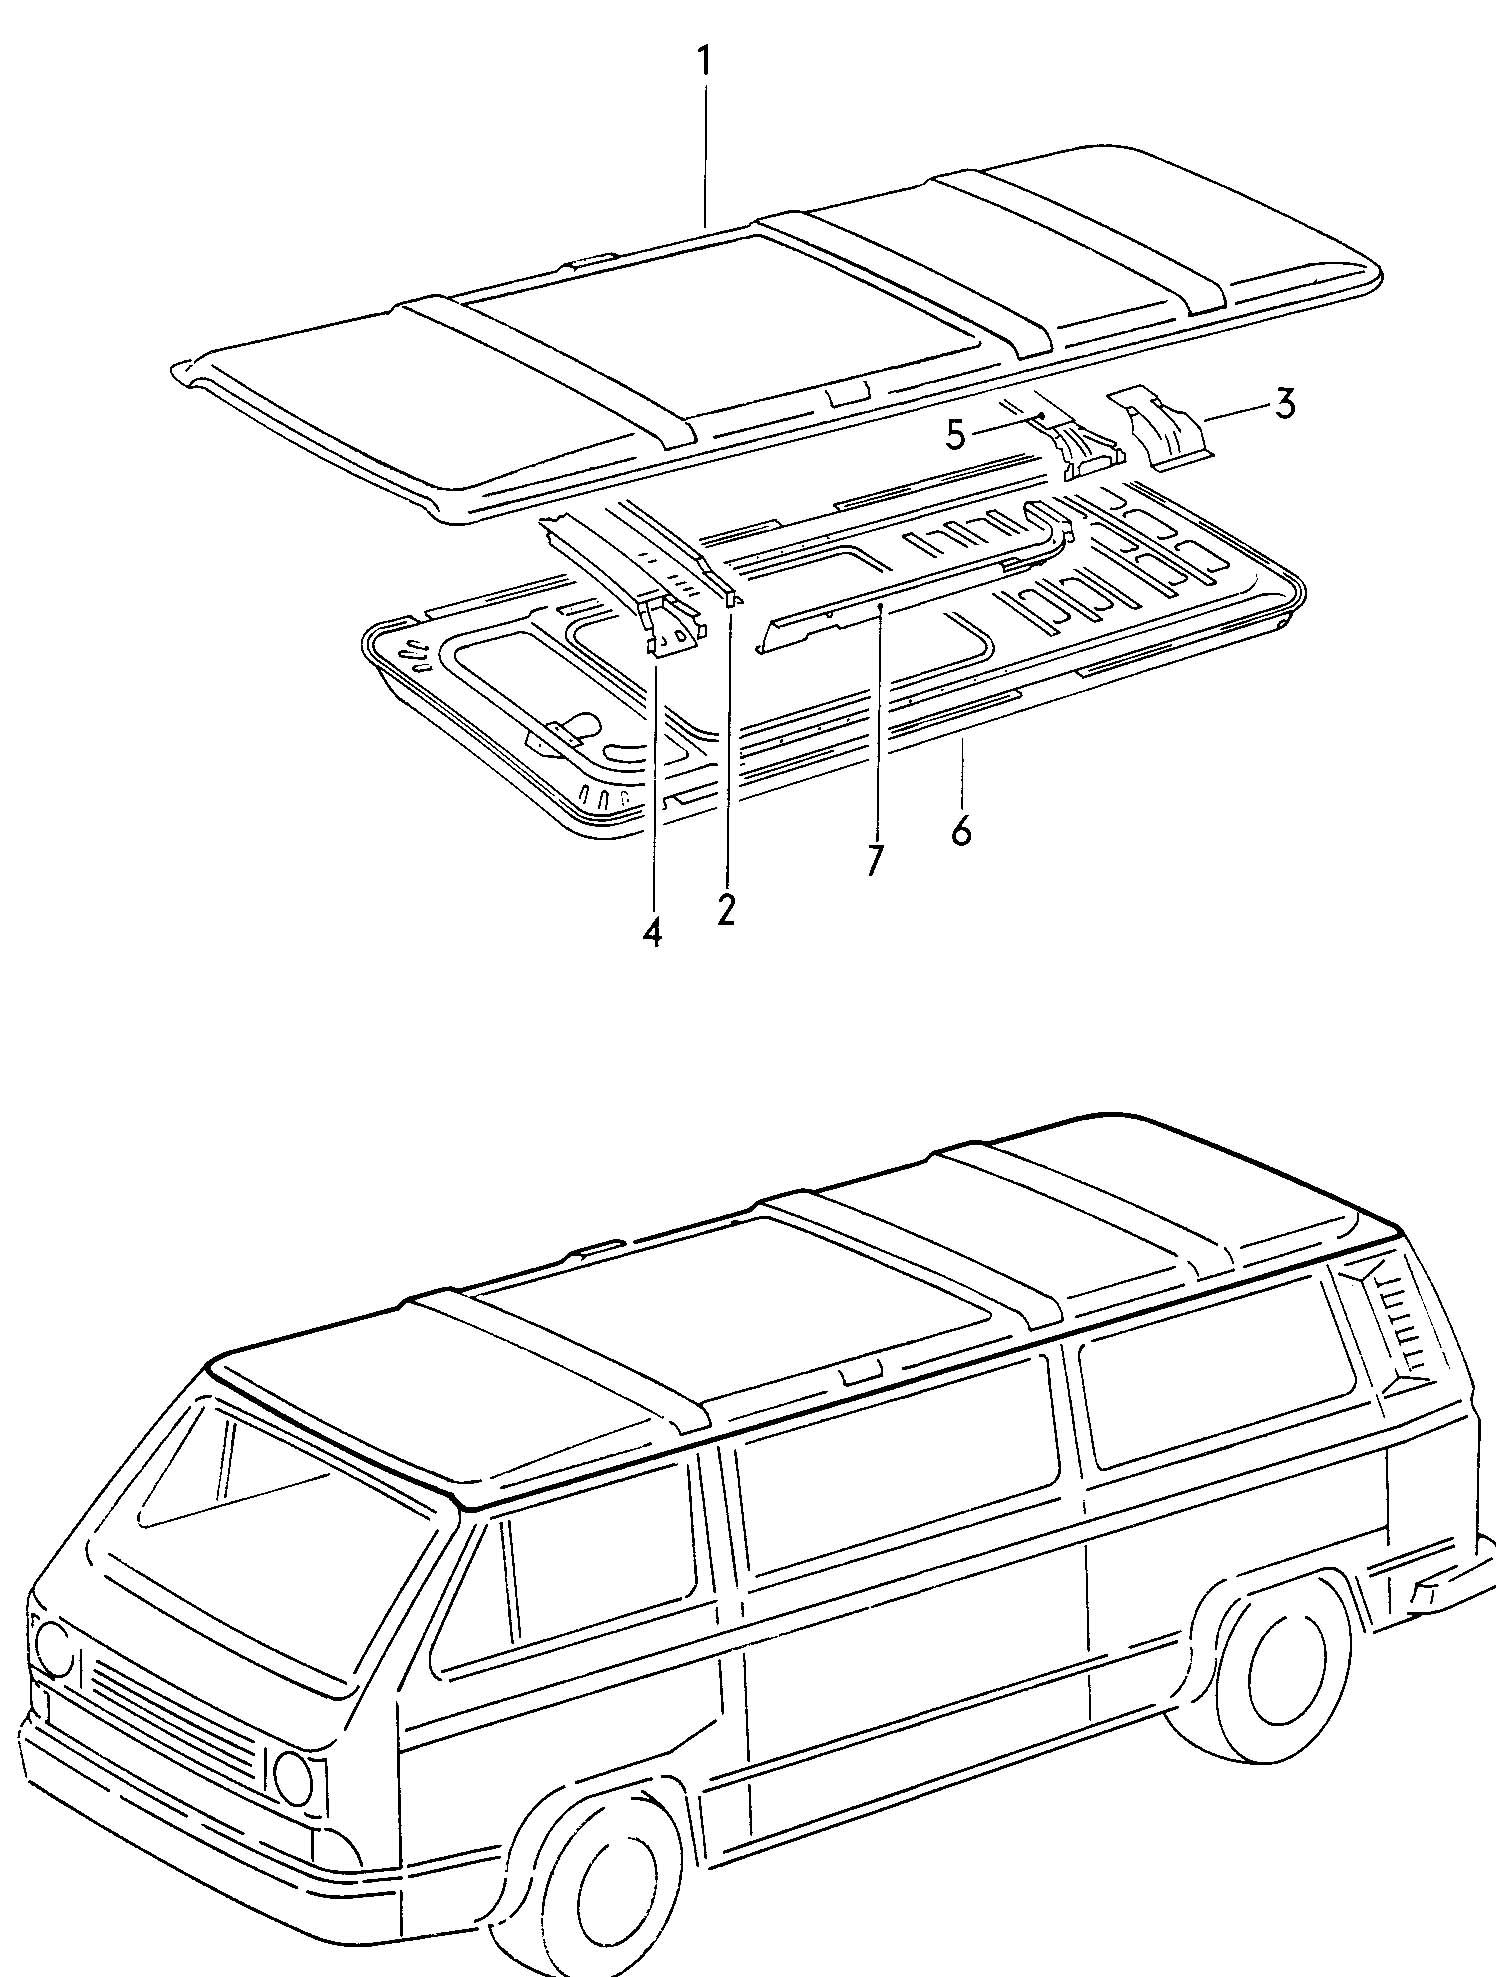 Roof for vehicles with manual sliding roof Volkswagen (VW